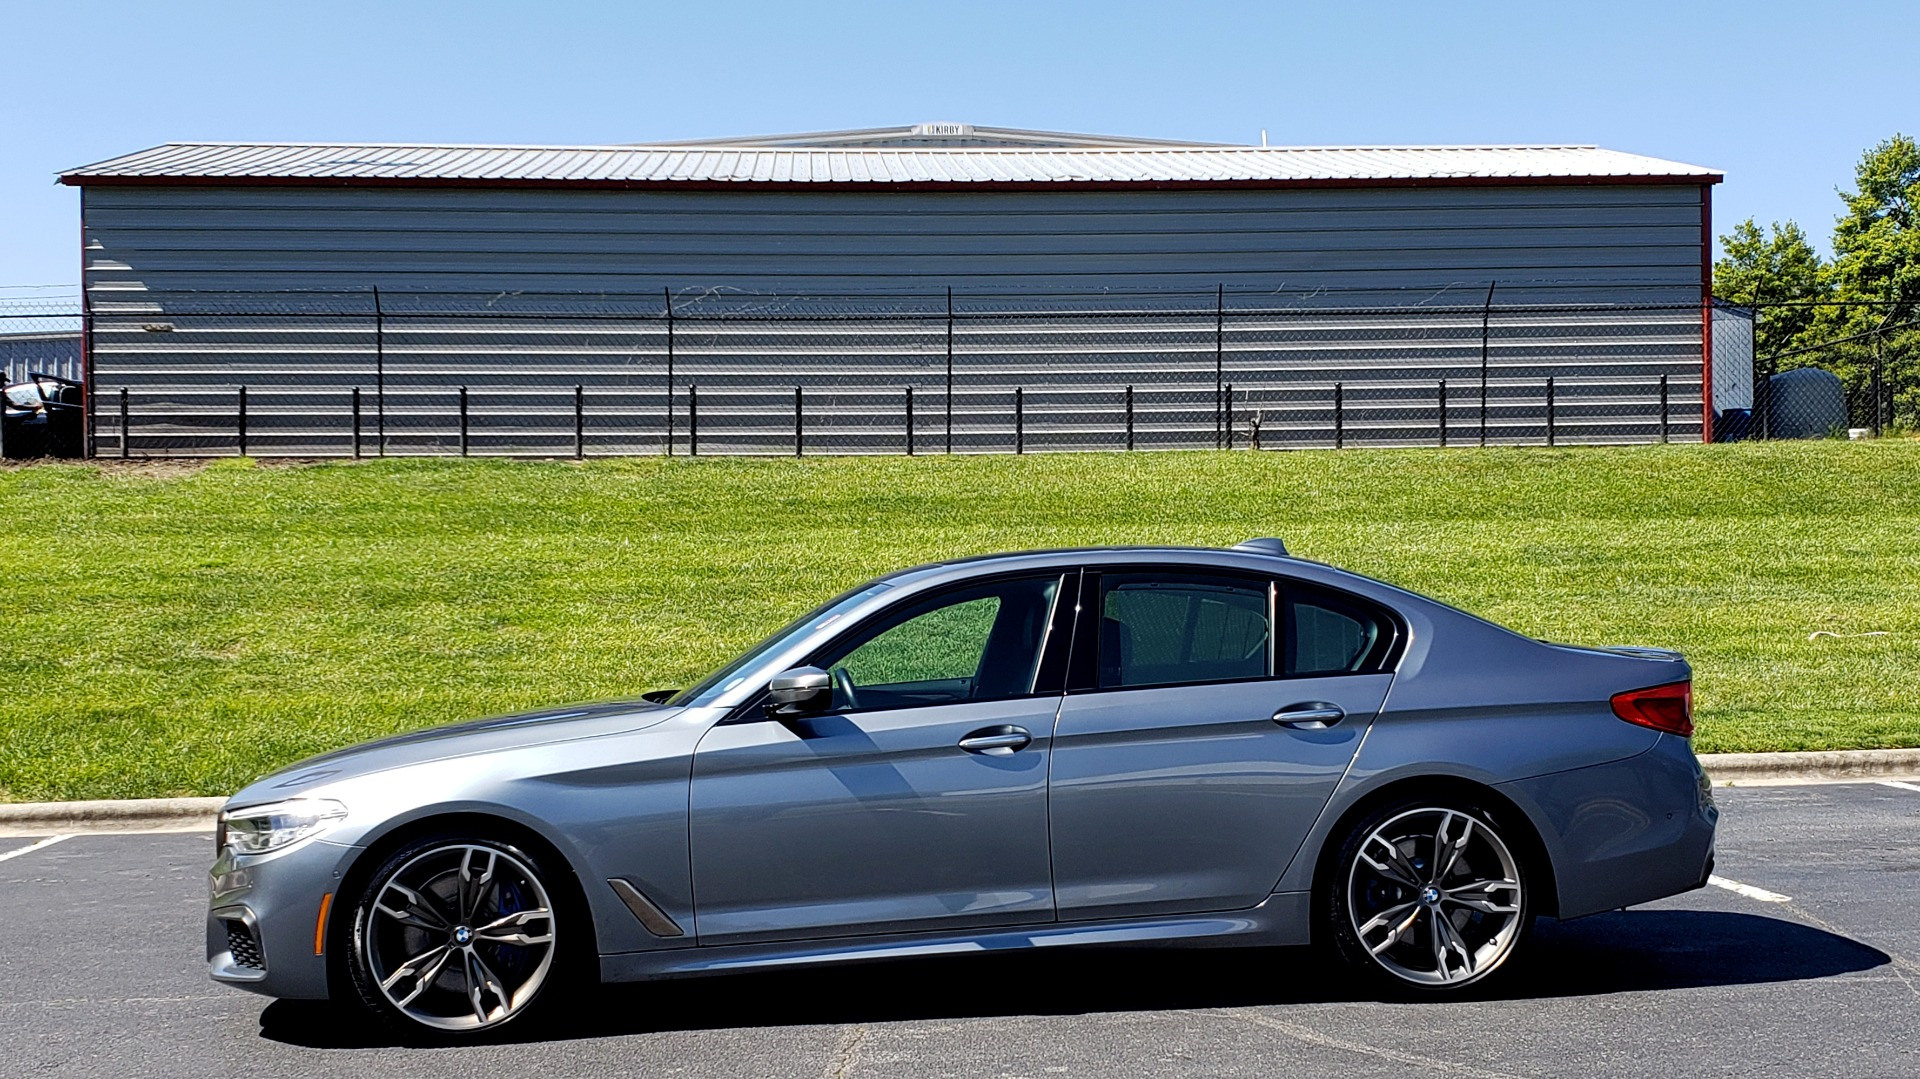 Used 2018 BMW 5 SERIES M550I XDRIVE / EXEC PKG / LUX / DRVR ASST / CLD WTHR / ACTIVE DR for sale Sold at Formula Imports in Charlotte NC 28227 2